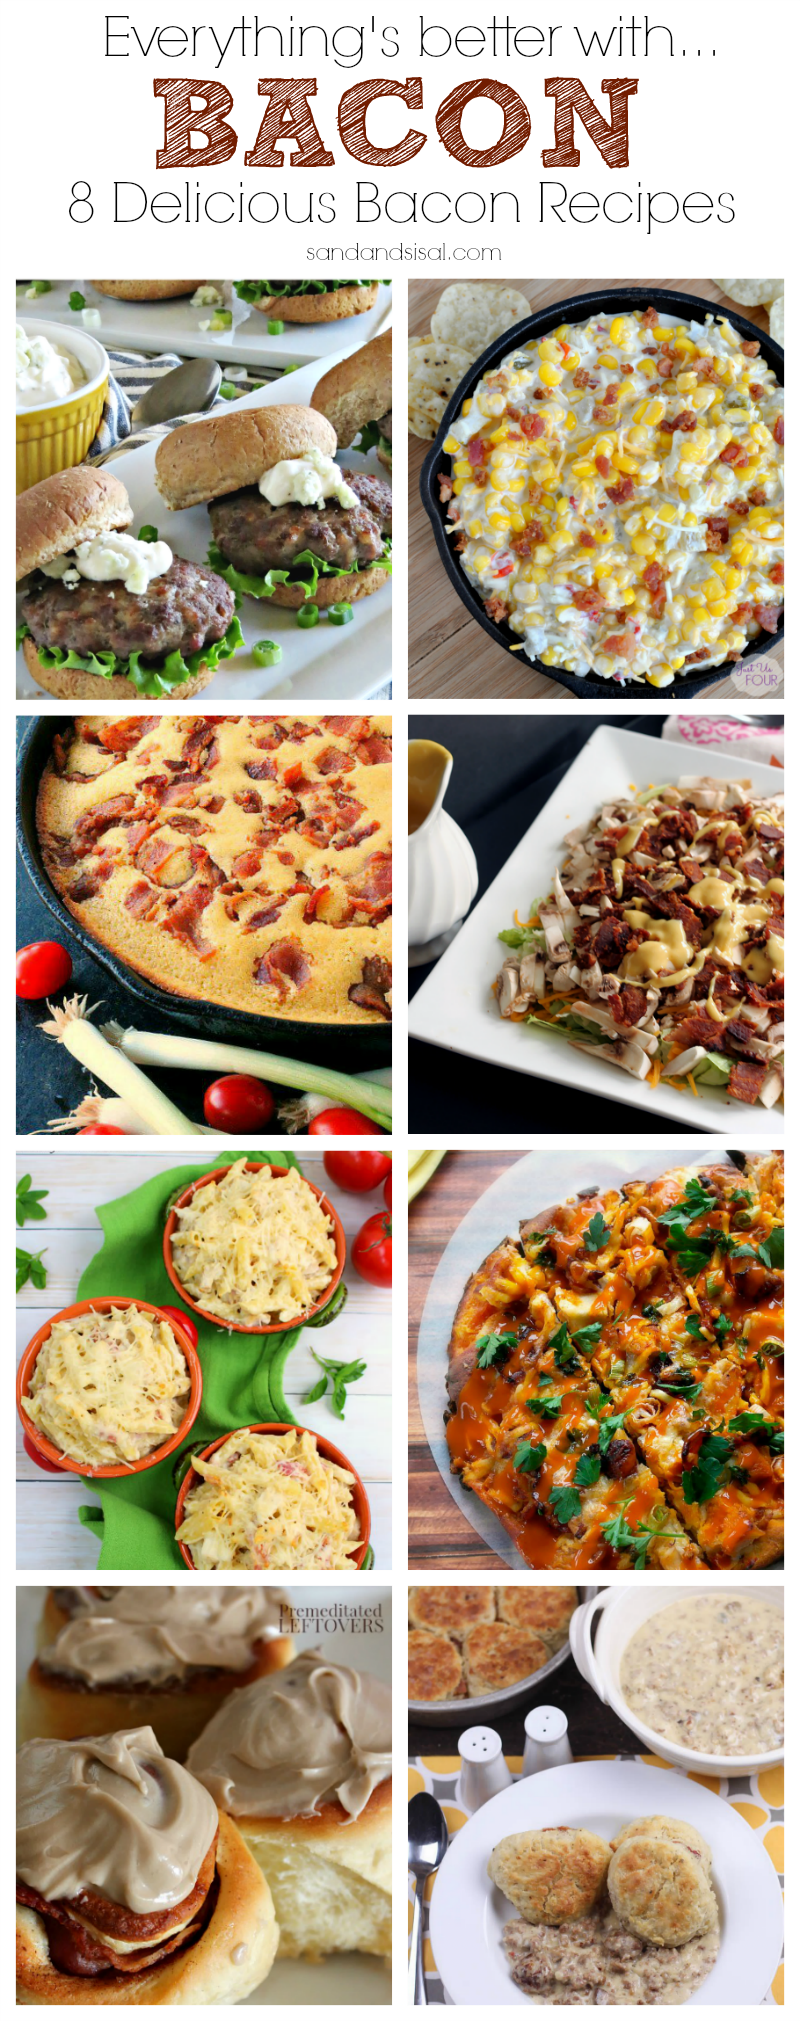 Everything is better with bacon! 8 delicious recipes with bacon that you will want to try! YUM!